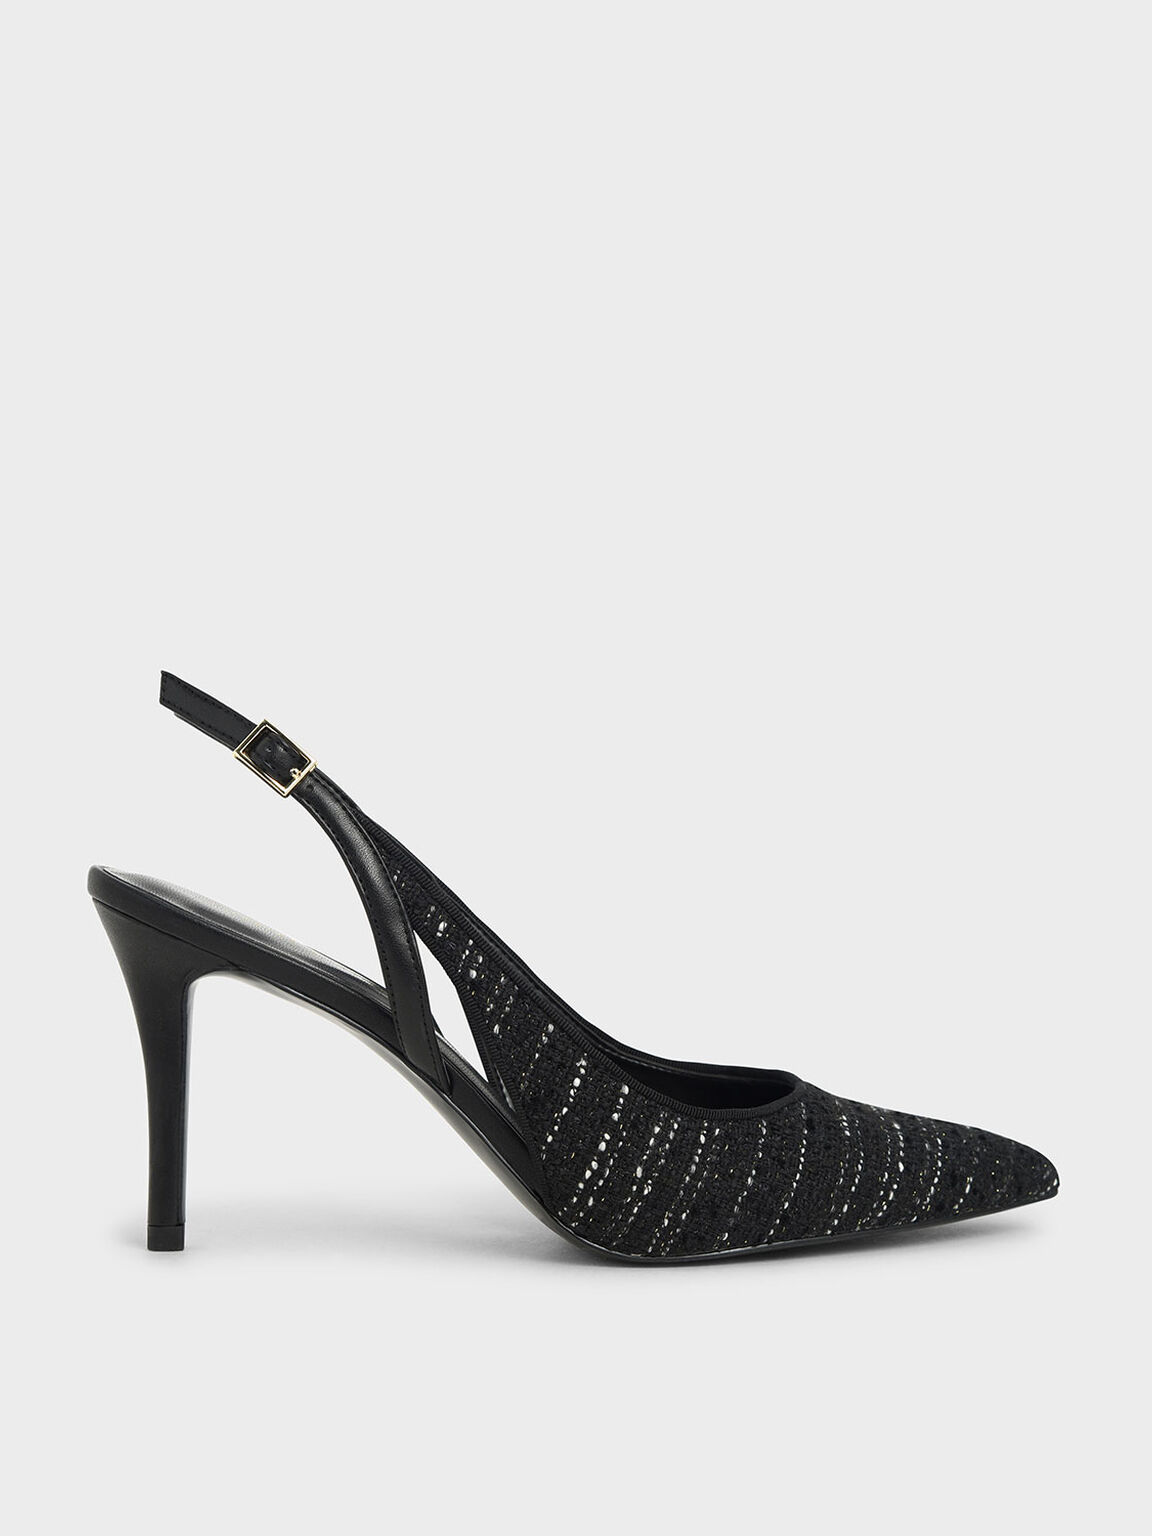 Tweed Cut-Out Slingback Pumps, Black Textured, hi-res